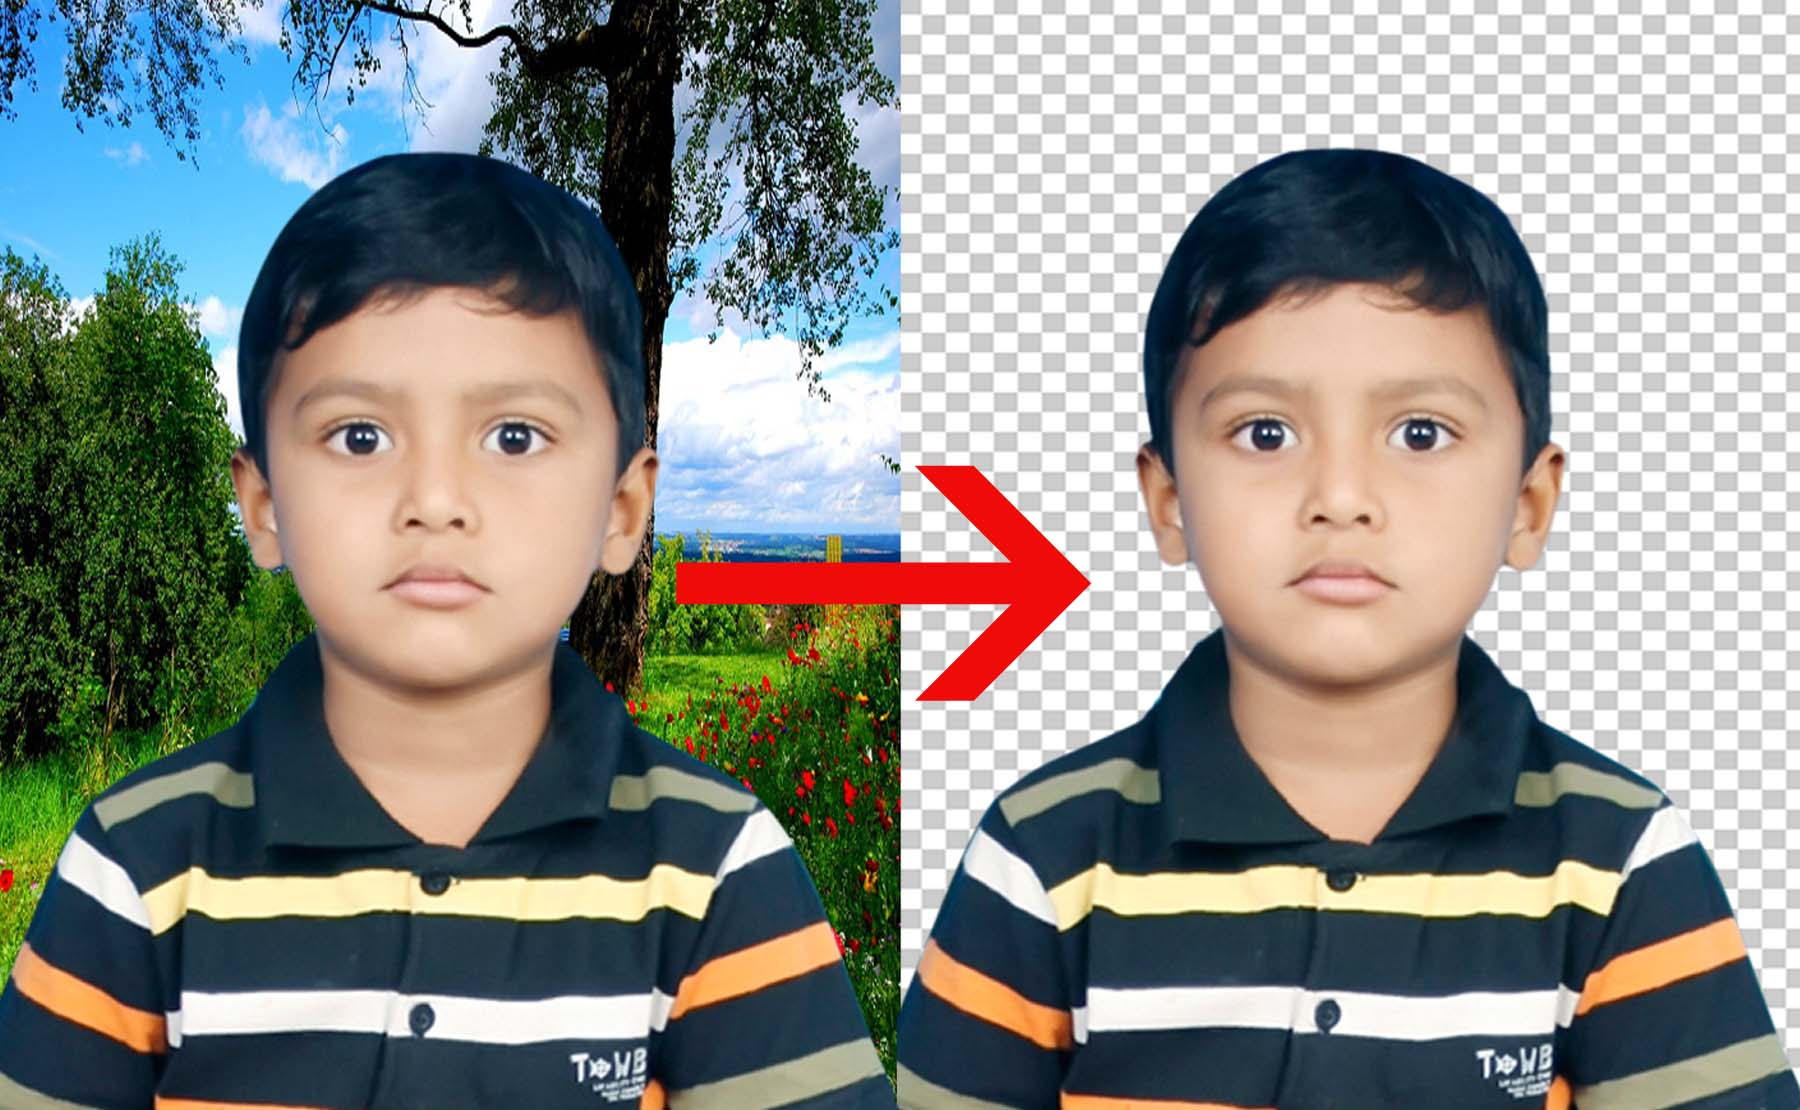 Get Professional Adobe Photoshop editing 1-2 hrs complete SEO